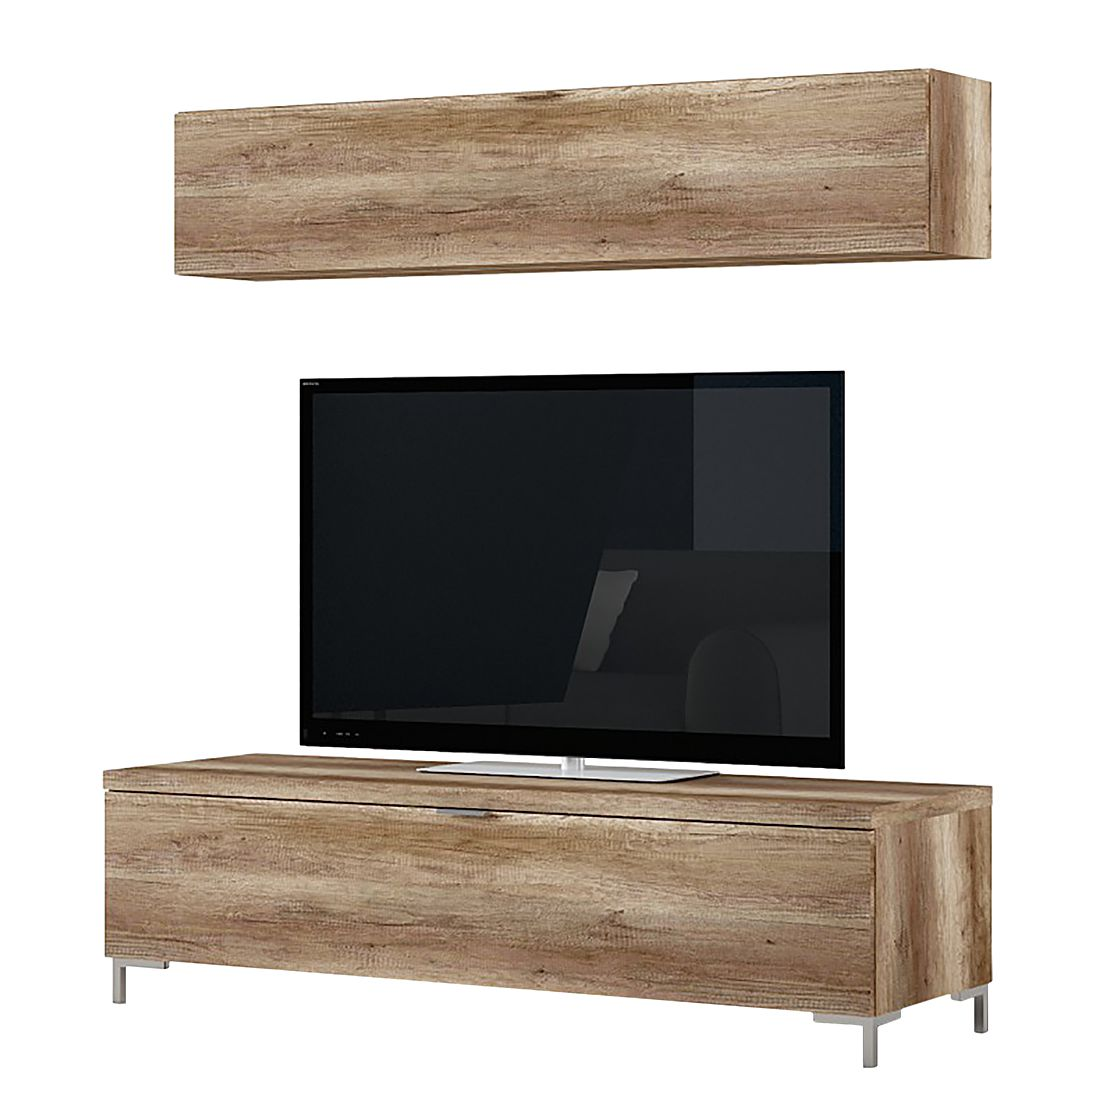 habitatsoldeur meubles tv hifi trouvez le meilleur prix pour meubles tv hifi. Black Bedroom Furniture Sets. Home Design Ideas